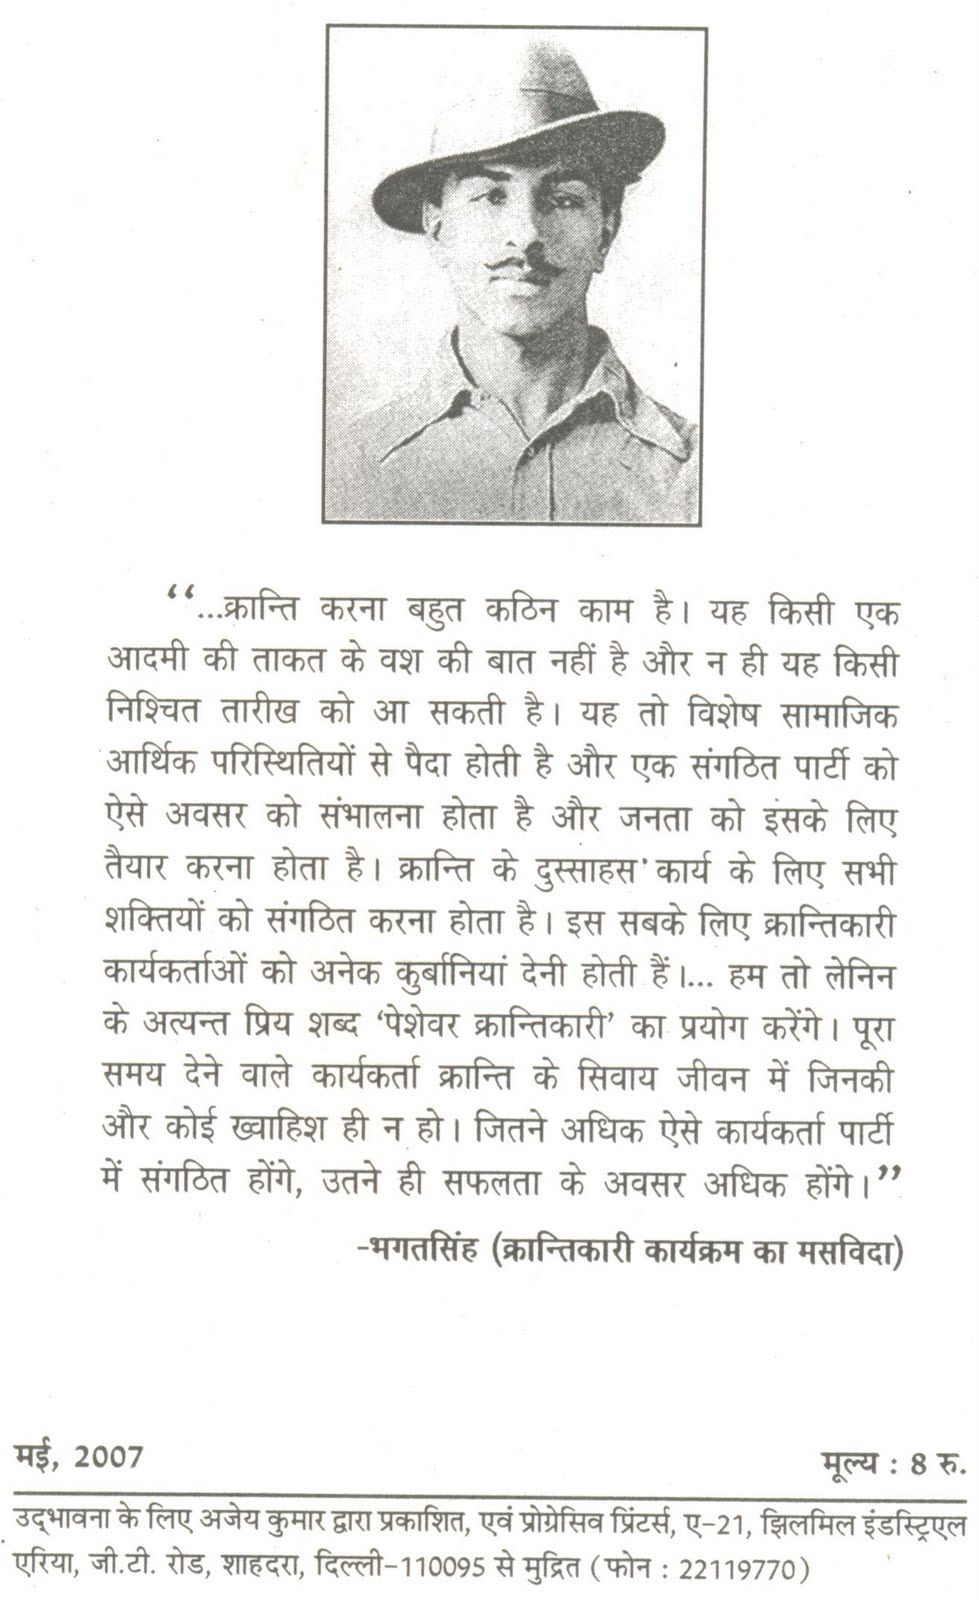 essay on mother teresa in hindi top ideas about mother teresa  bhagat singh essay an essay on bhagat singh for students kids and essay on bhagat singhessay